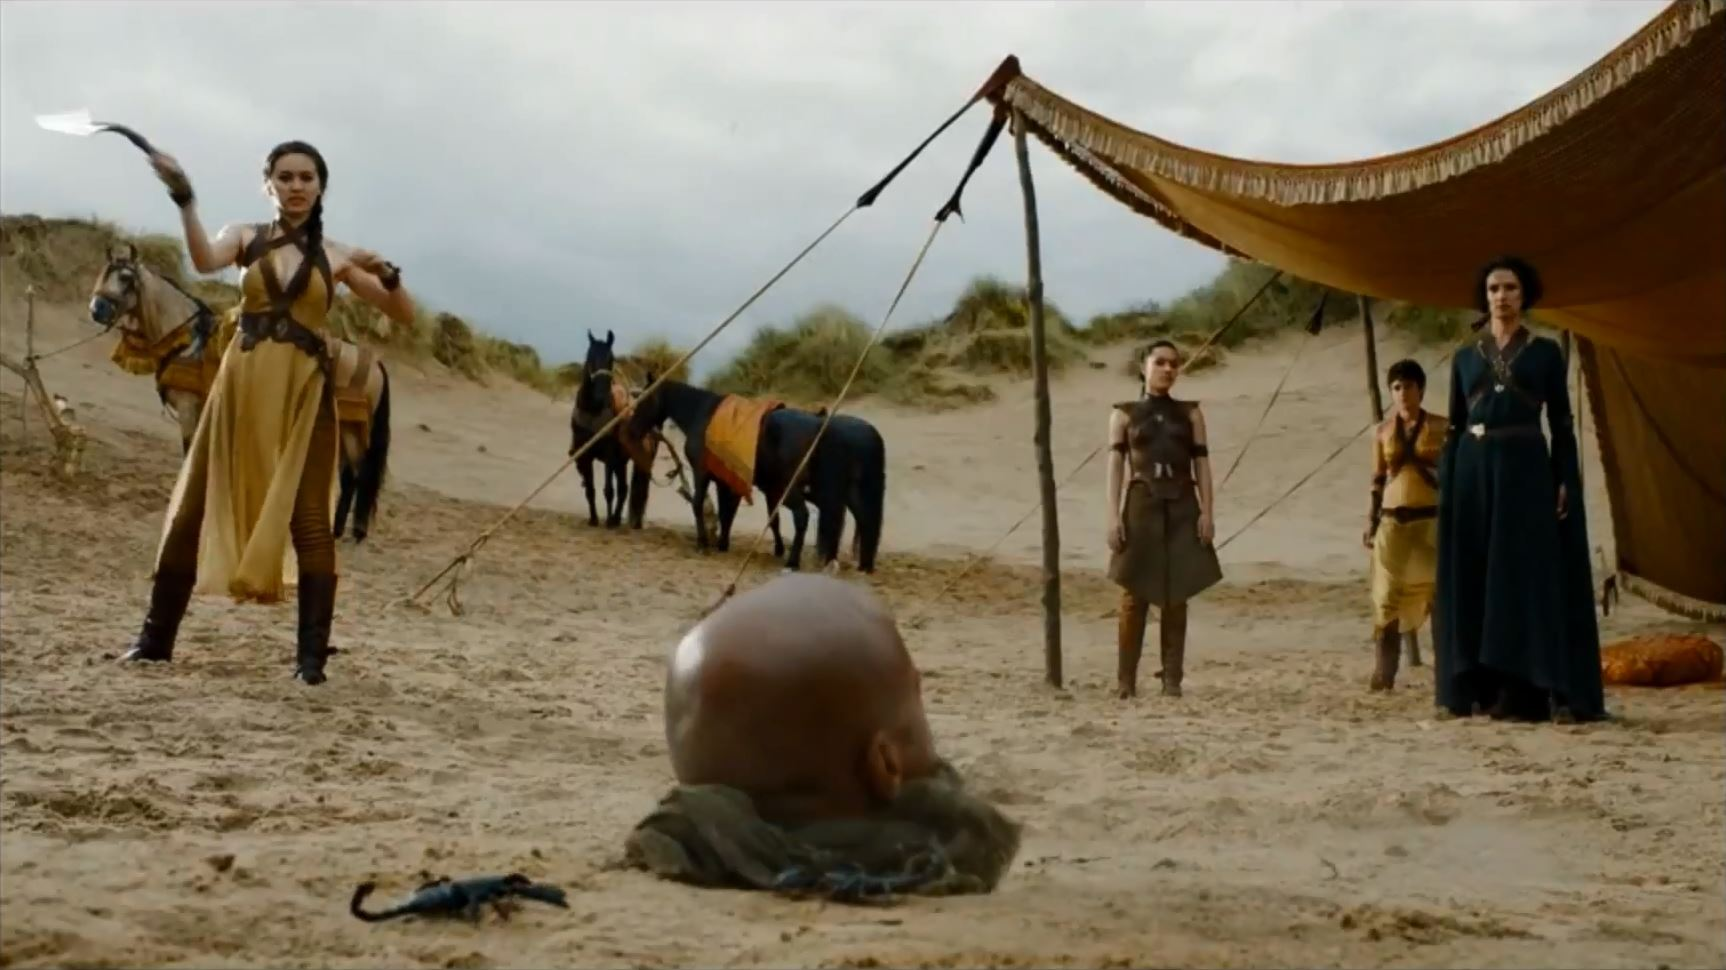 Game of Thrones Season 5 Trailer 2. The sand snakes and Elaria Sand